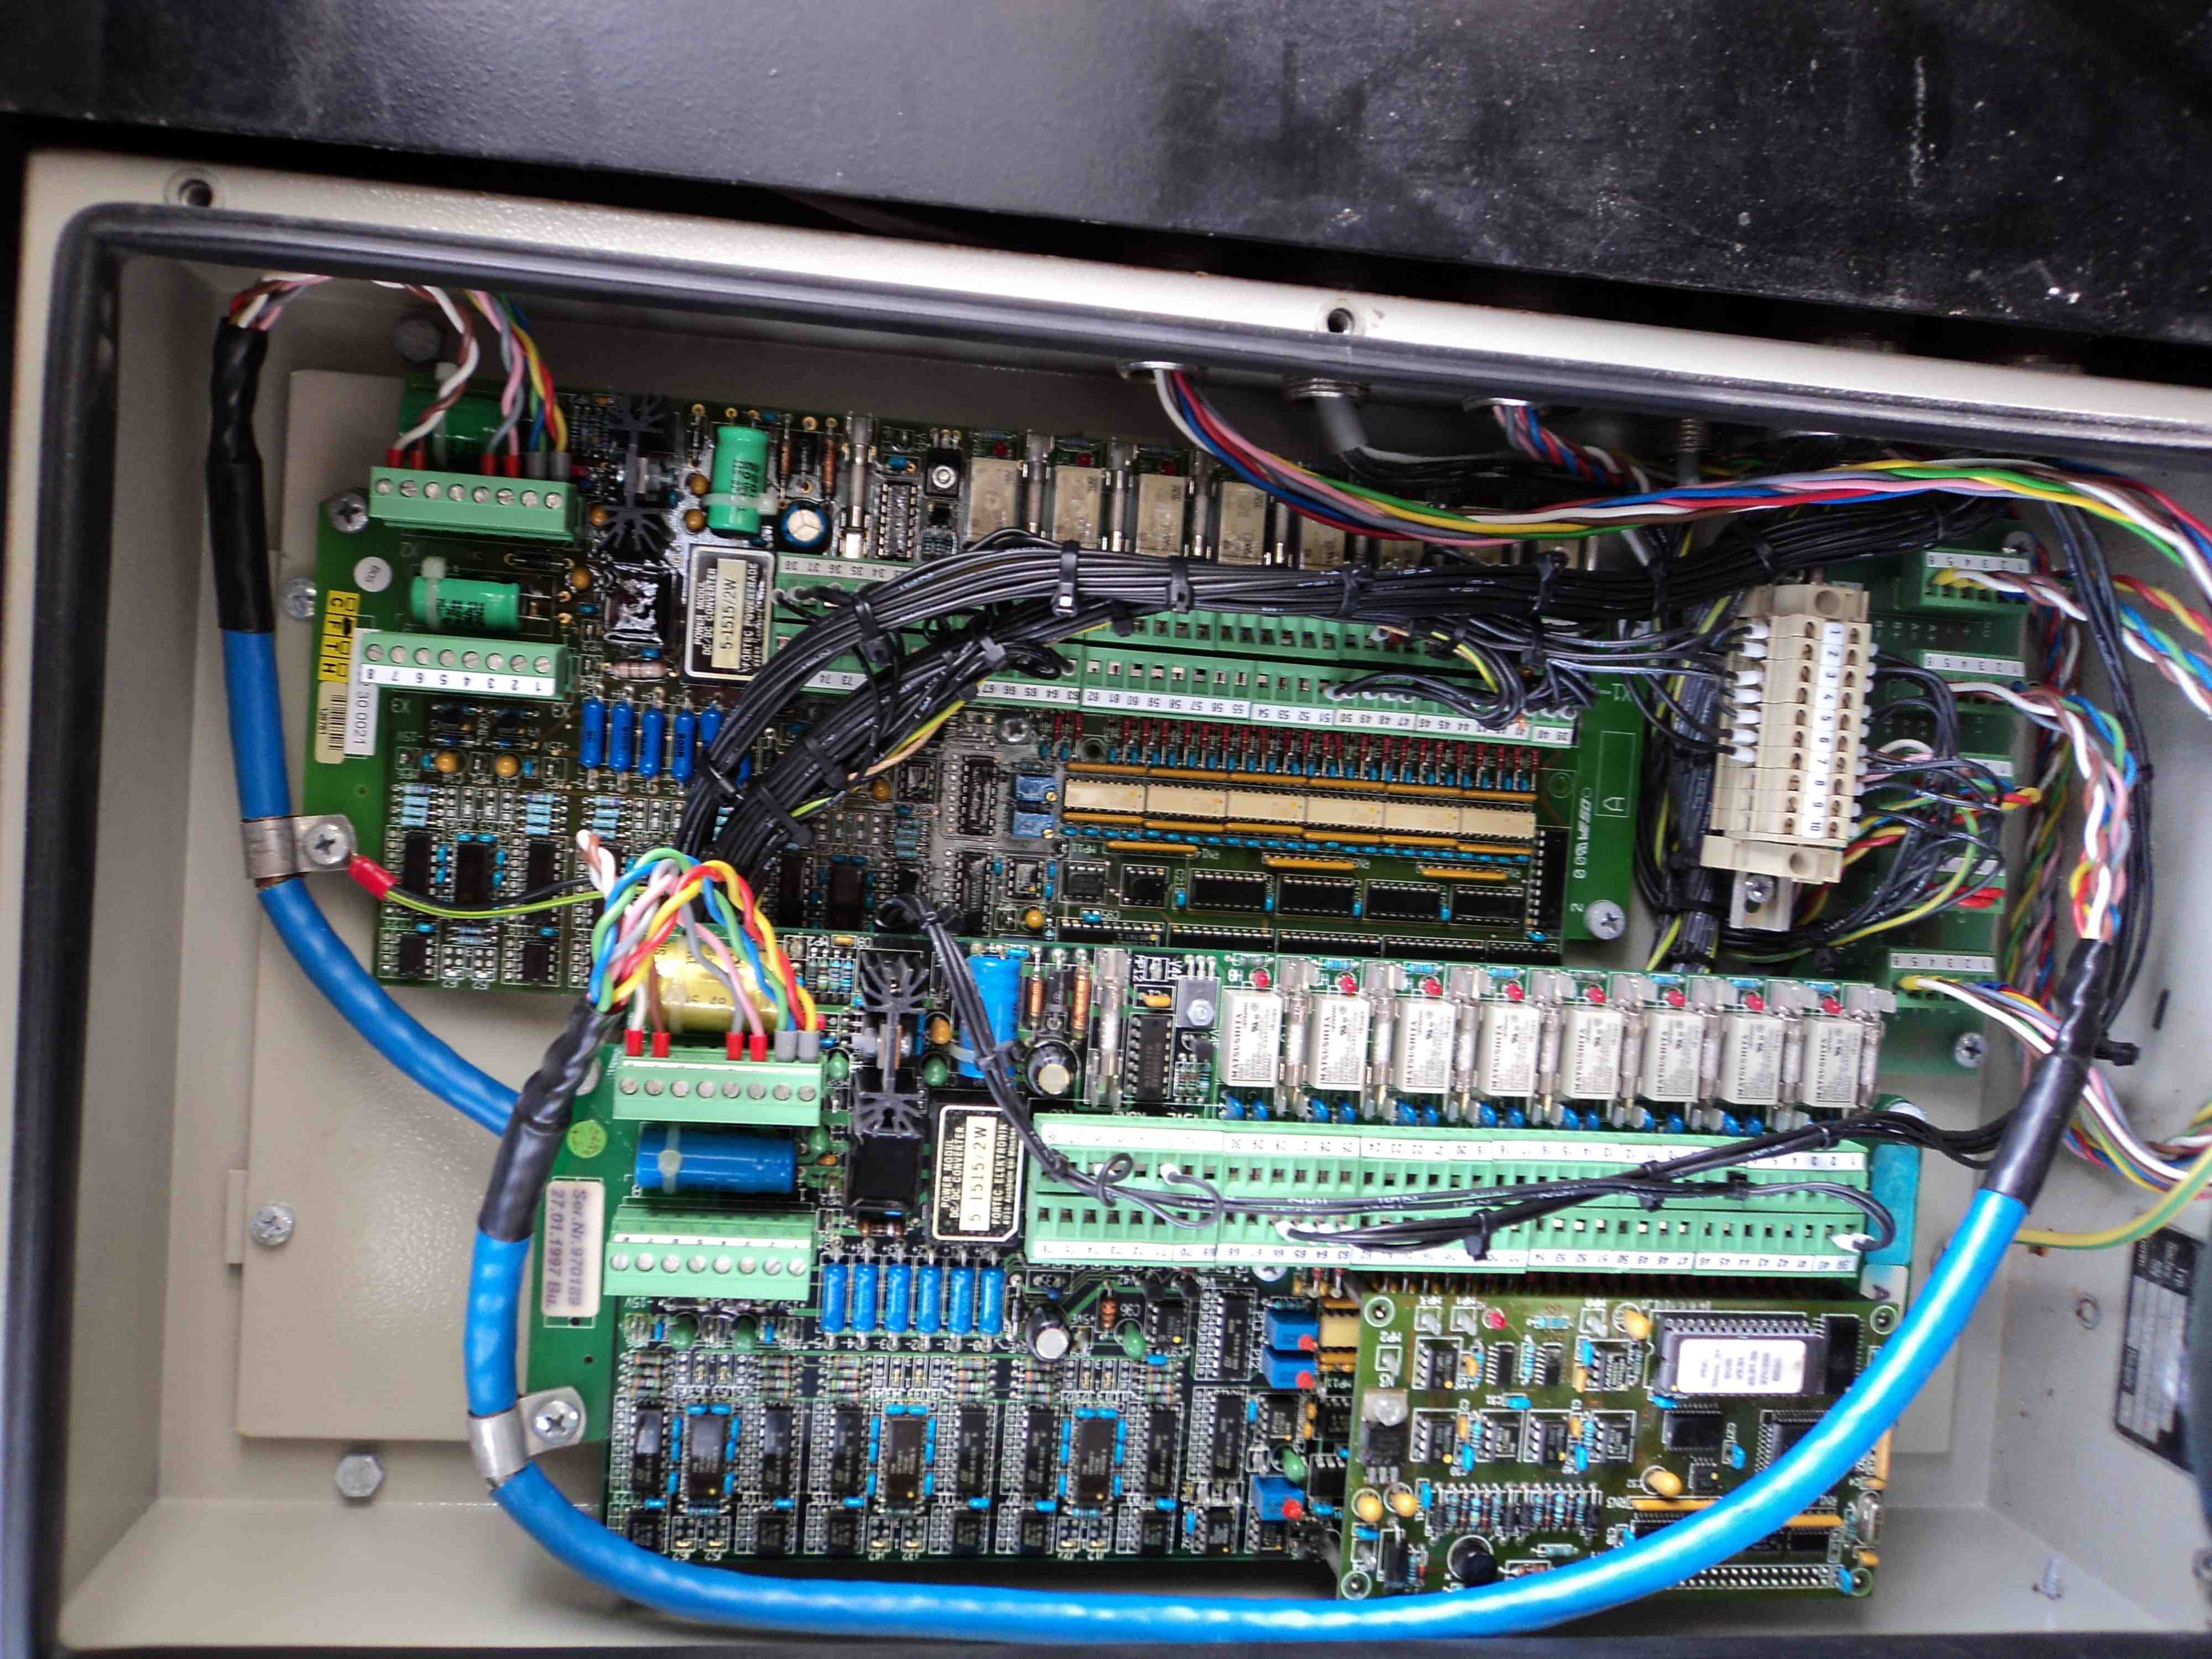 Demag AC665 PDC Multisensor Card Troubleshooting